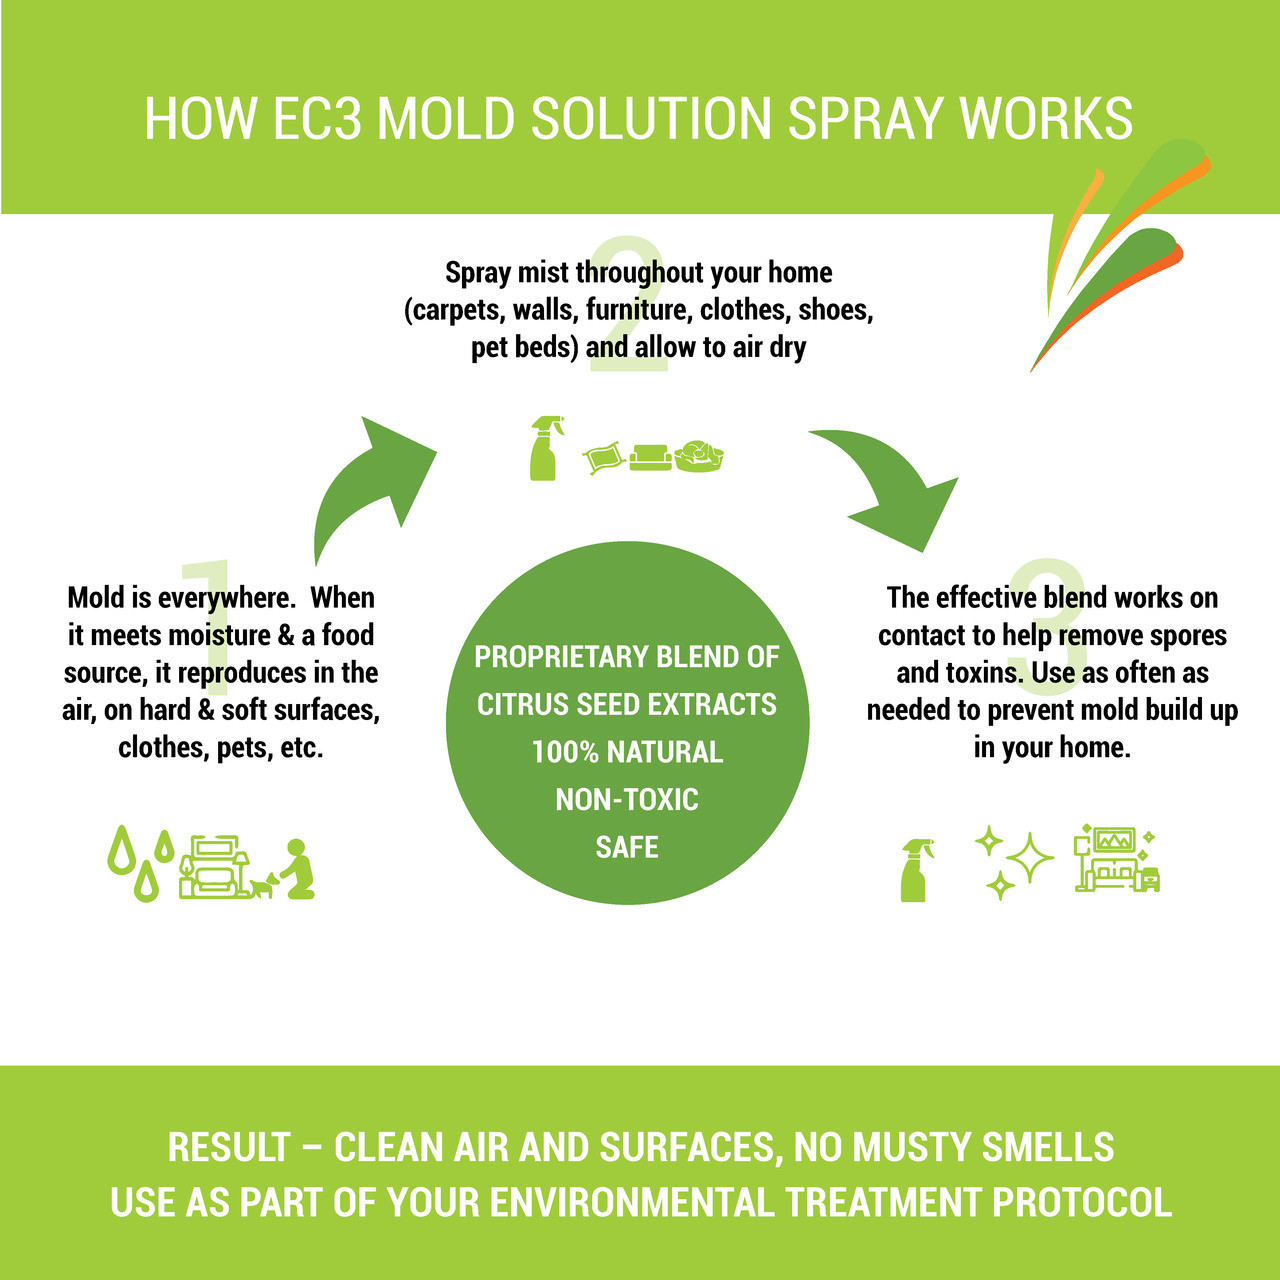 EC3 Mold Solution Spray